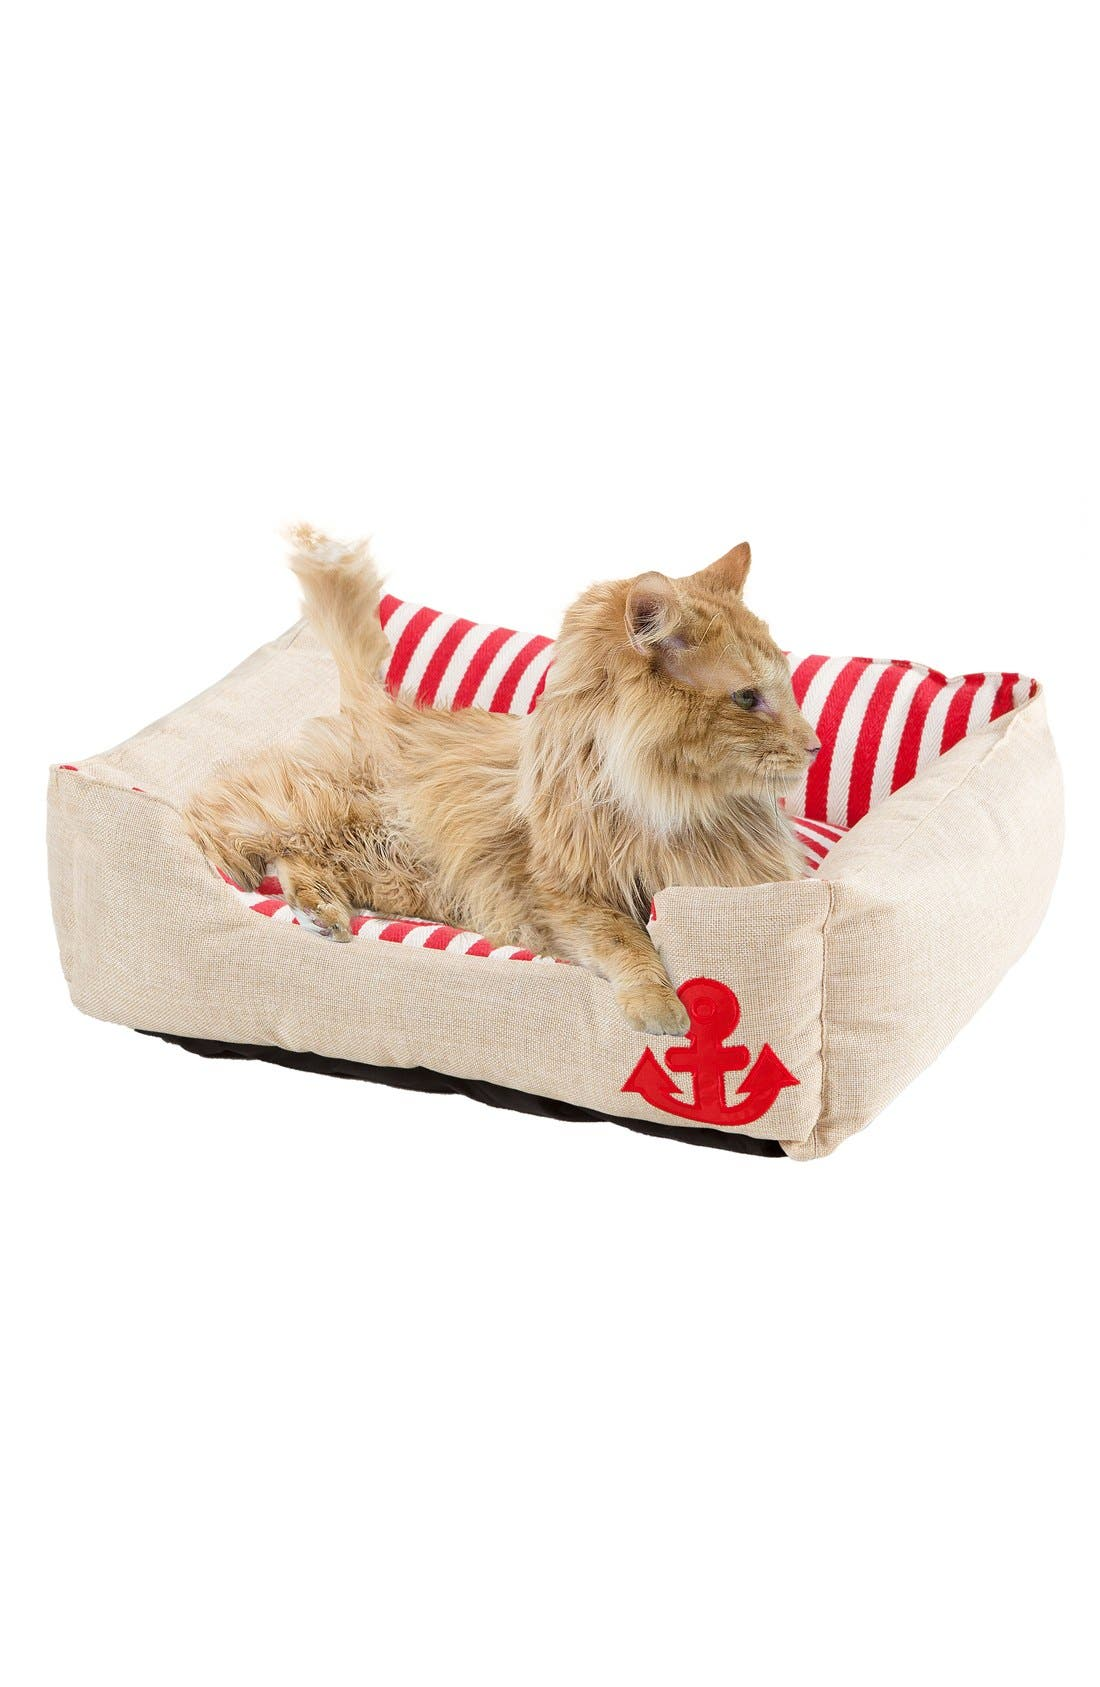 Everly Nautical Pet Bed,                         Main,                         color,